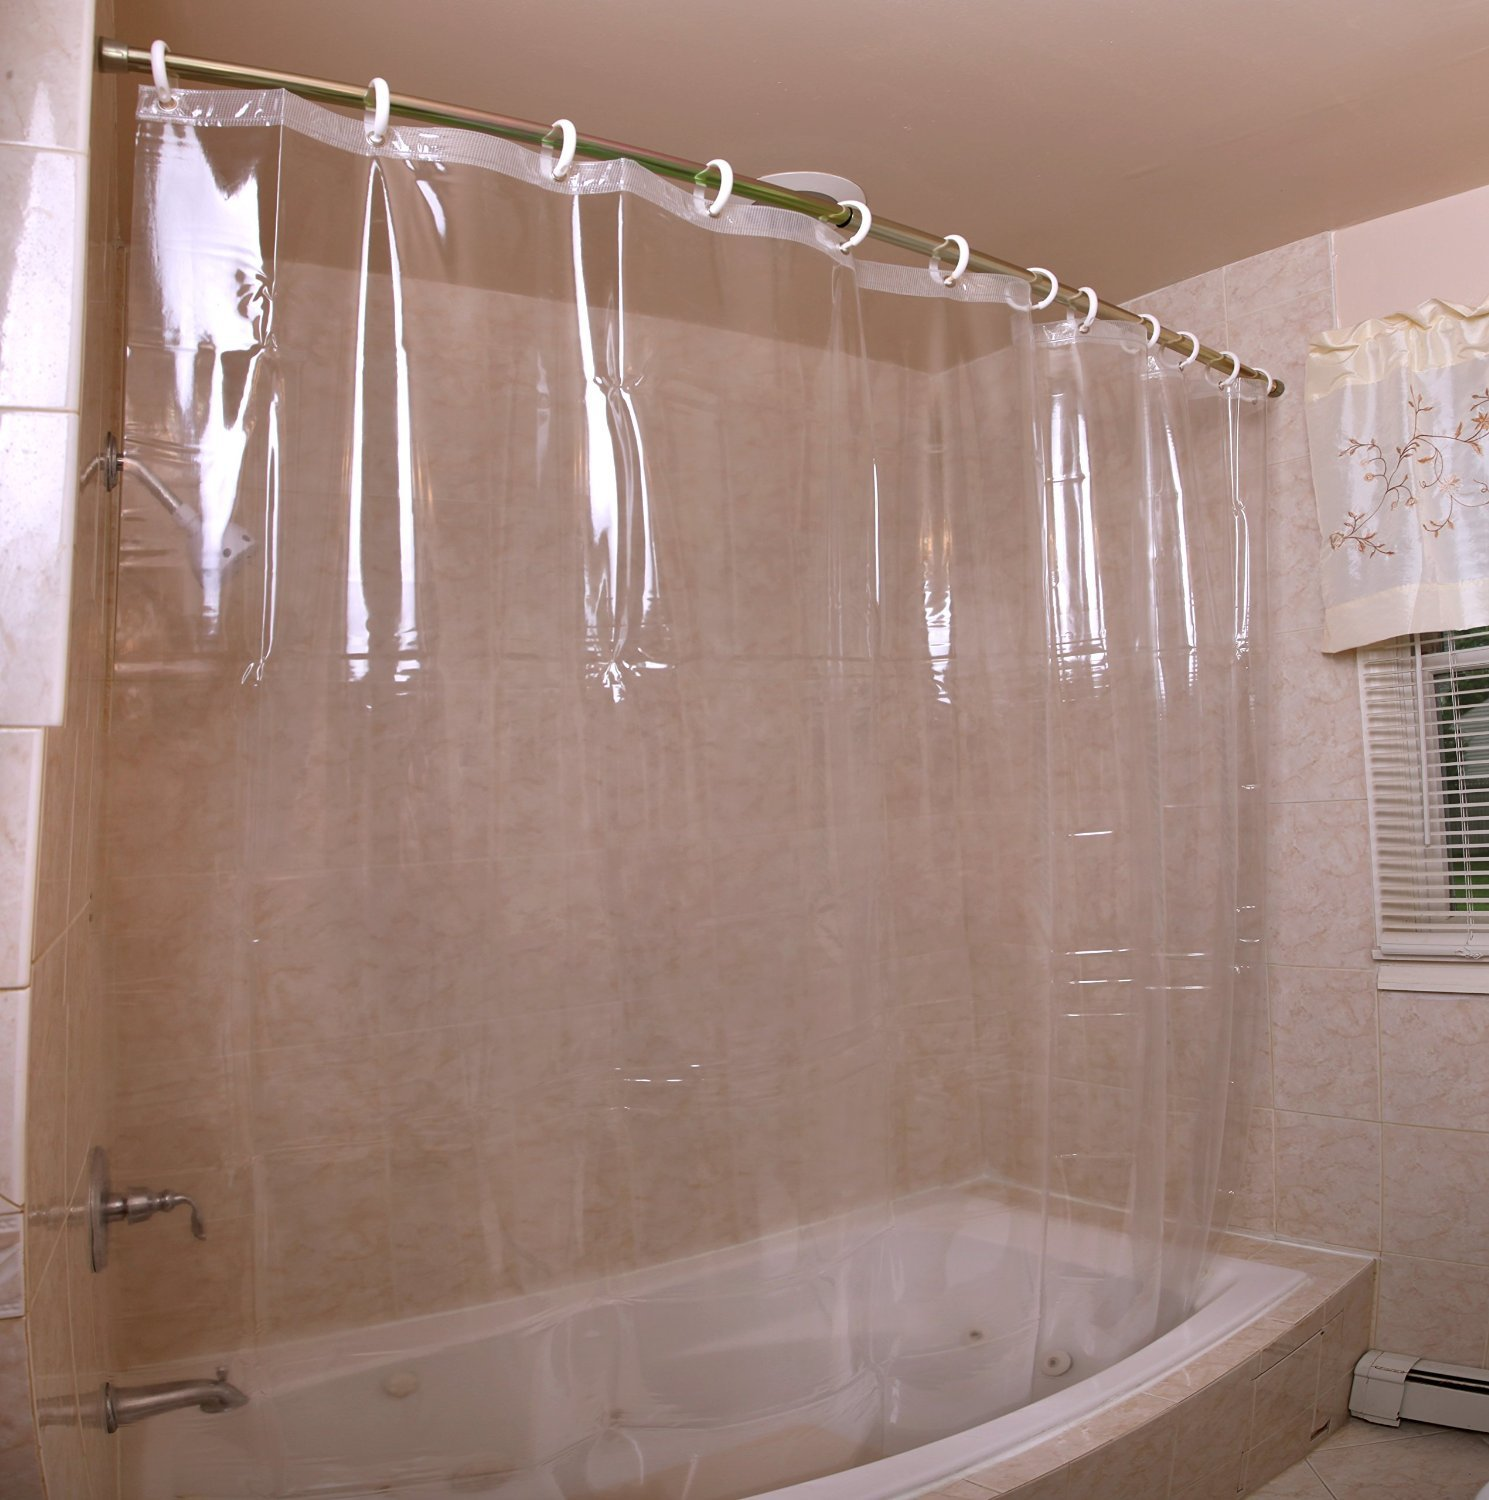 Shower Curtain Liner | Extra Long Fabric Shower Curtain Liner | Shower Curtain with Liner